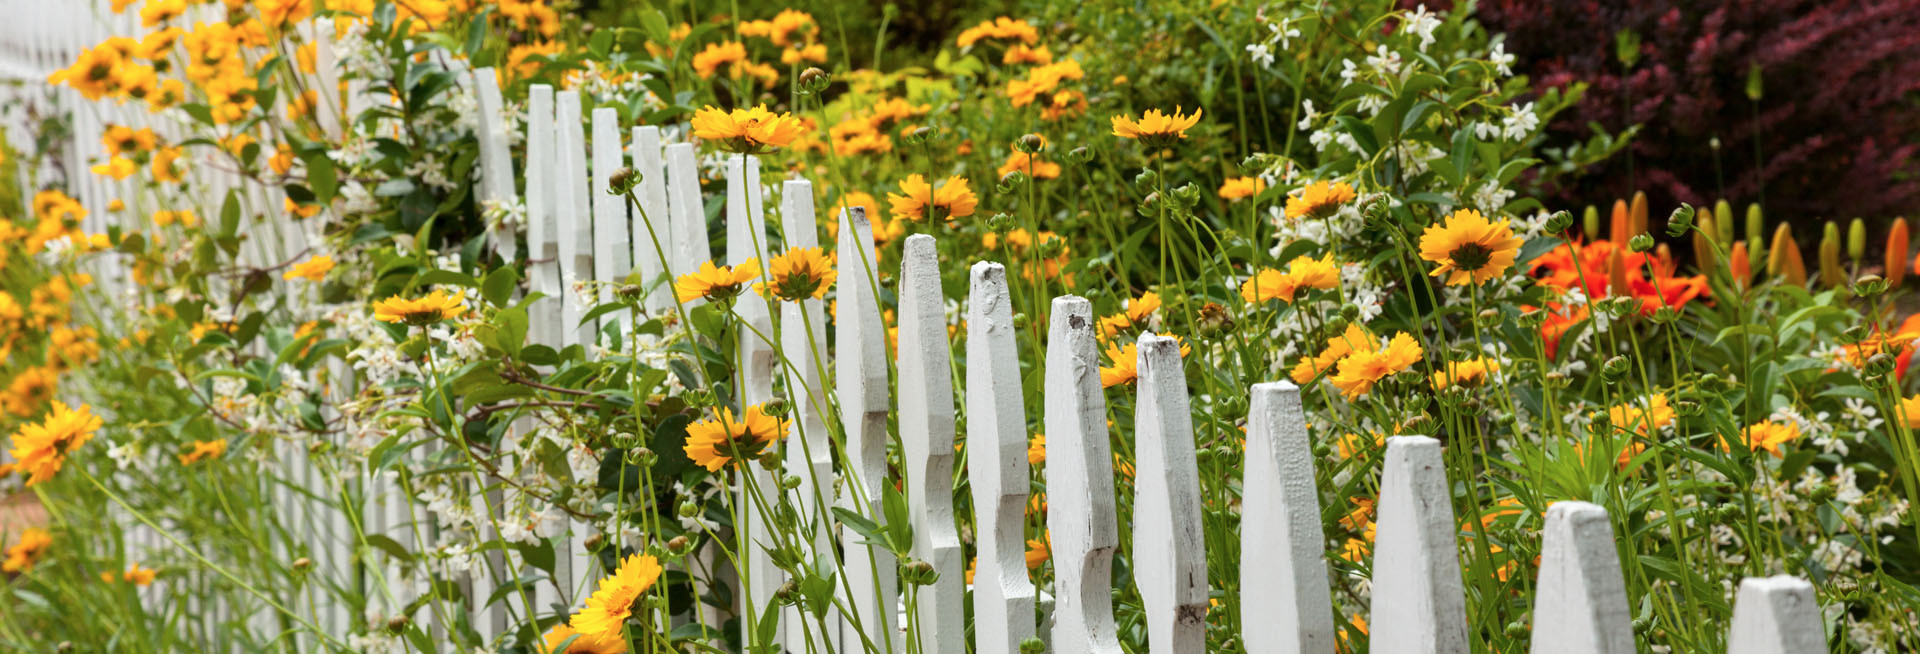 white picket fence construction